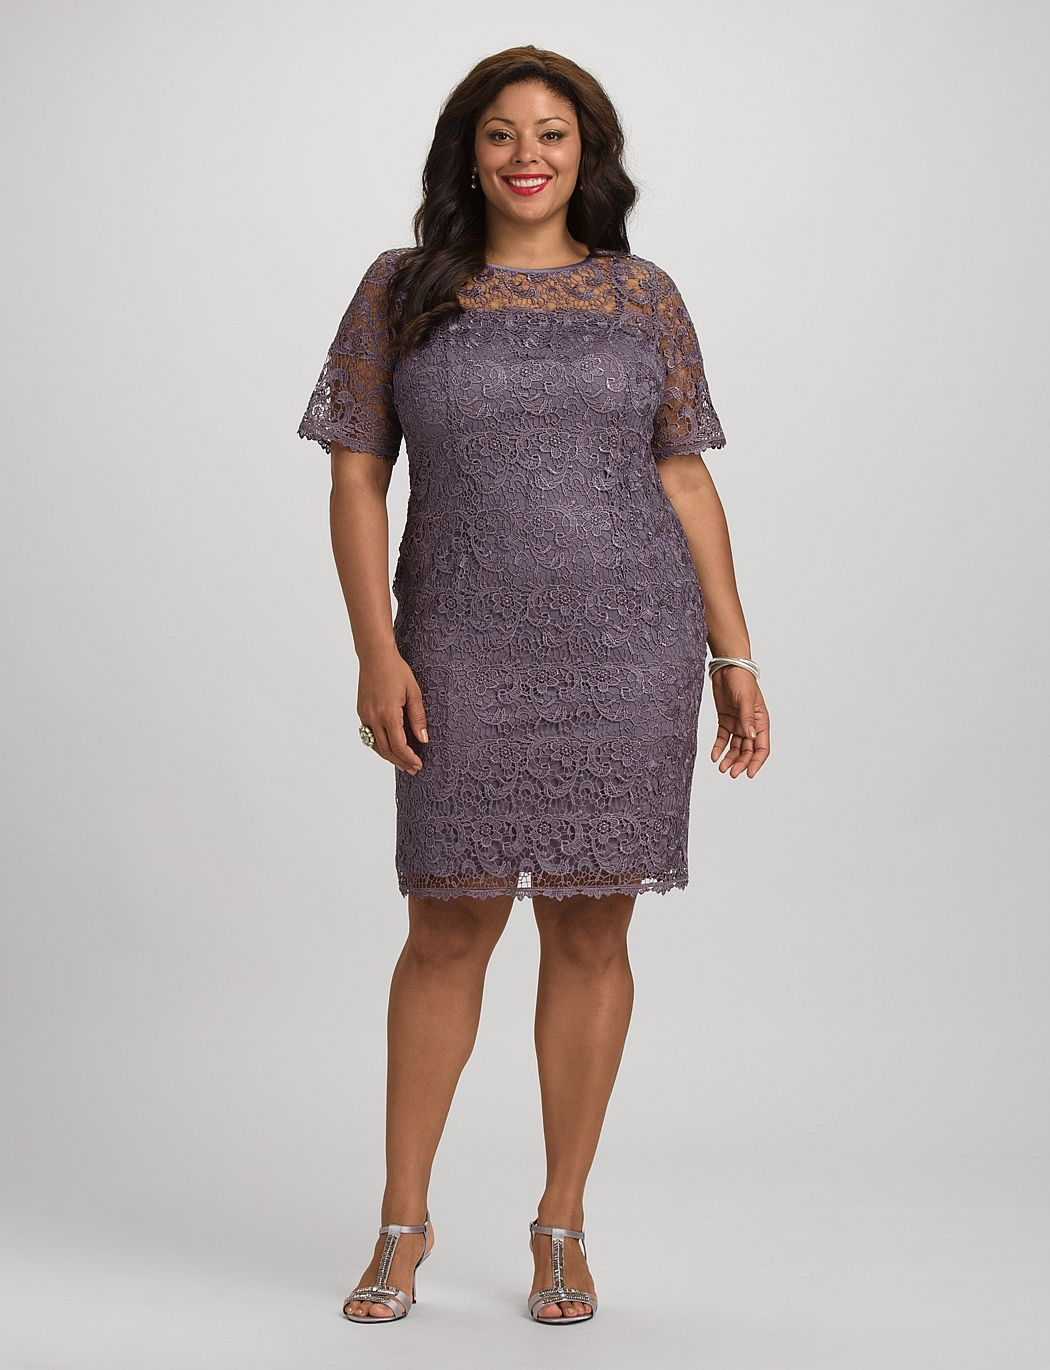 Dress for fall wedding  Db RSVP Plus Size Lace Sheath Dress  dressbarn  Fall Wedding